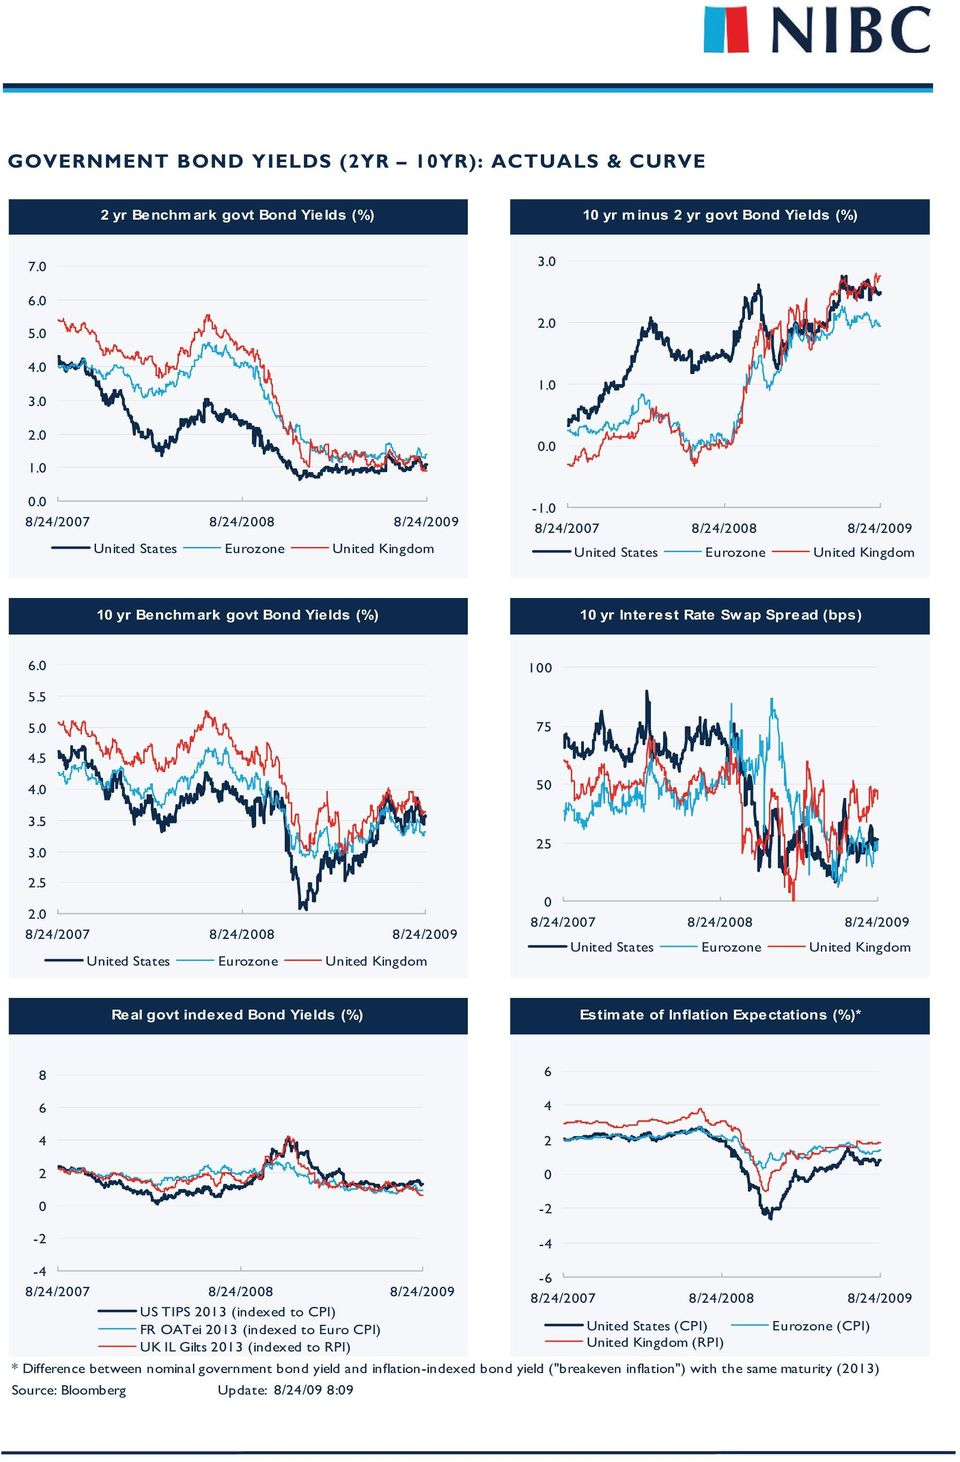 5 25 Real govt indexed Bond Yields (%) Estimate of Inflation Expectations (%)* 8 6 4 2 6 4 2-2 -2-4 US TIPS 213 (indexed to CPI) FR OATei 213 (indexed to Euro CPI) UK IL